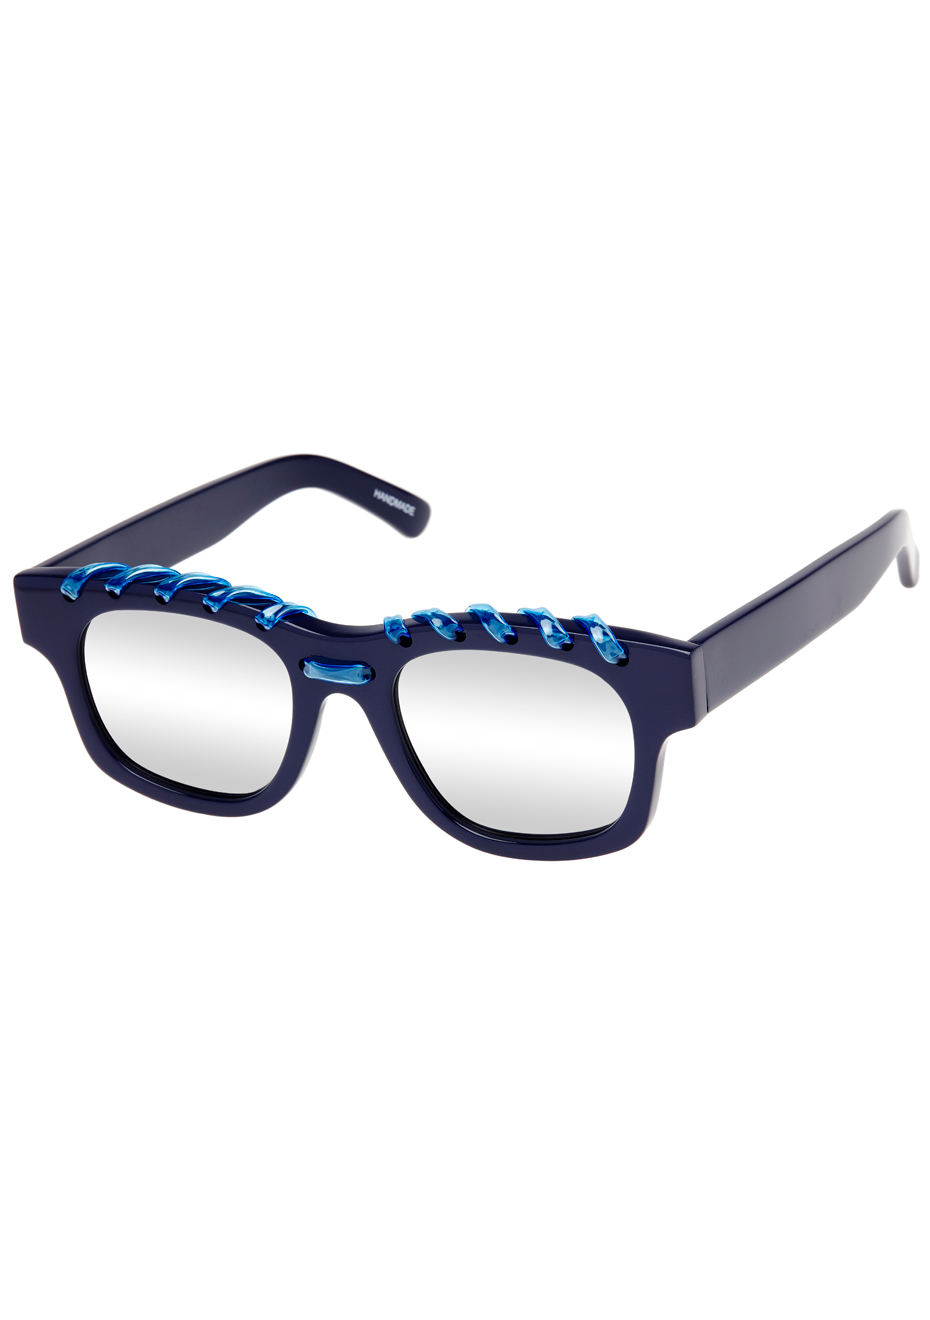 Holland Eyewear Ropey 1611205 Of Onceit House Navy SA4w5q